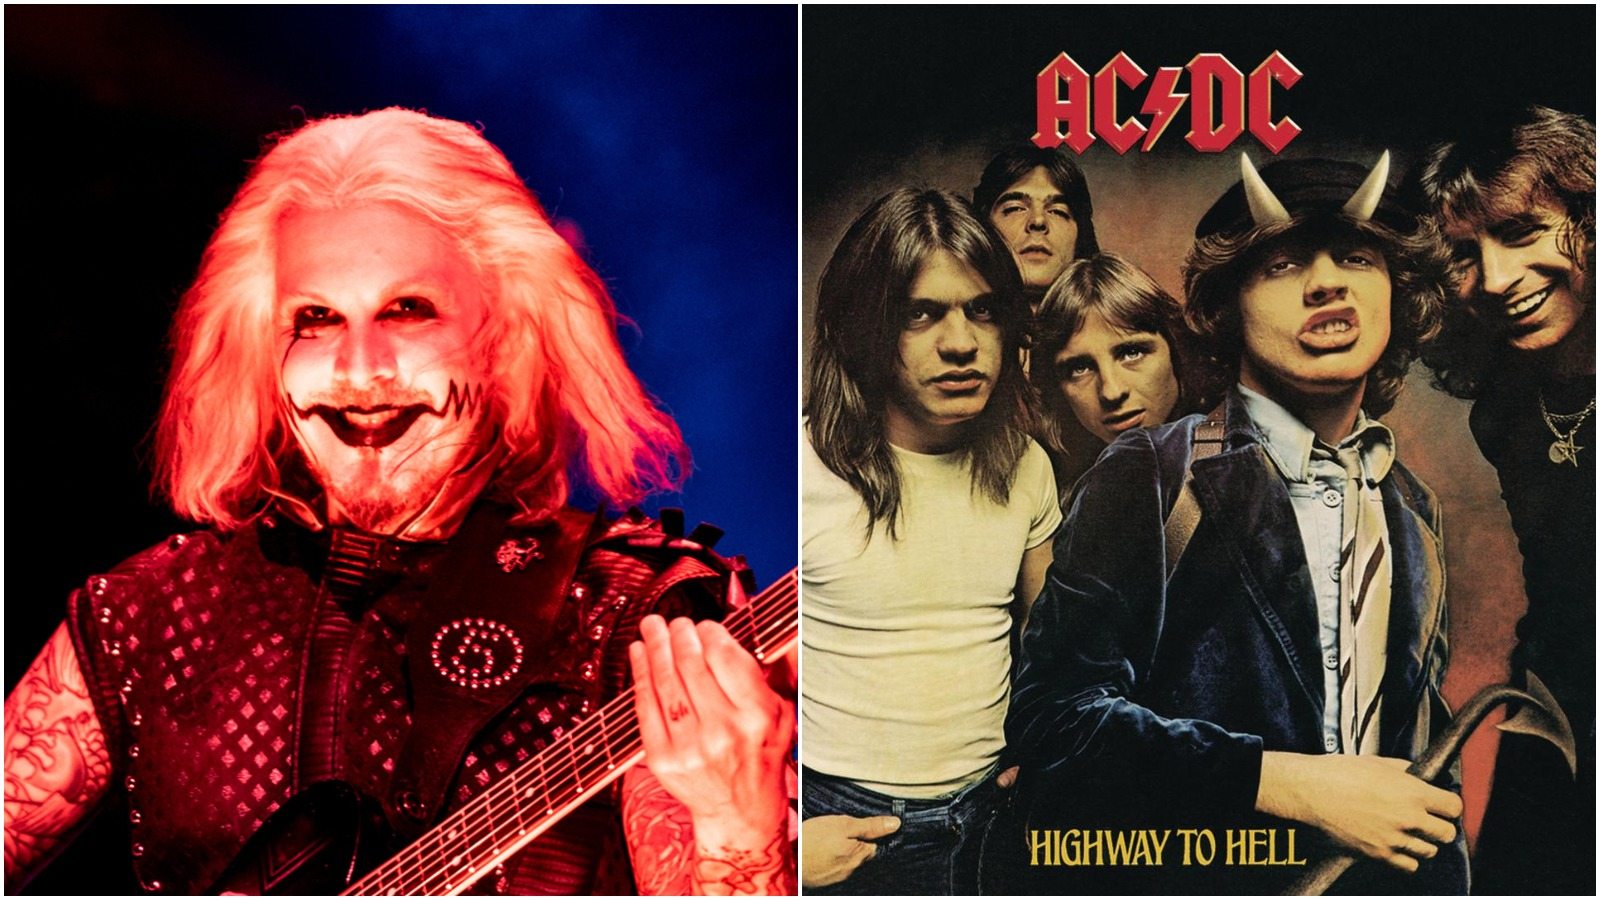 John 5: How AC/DC's 'Highway To Hell' Taught Me to Be a Better Guitar Player